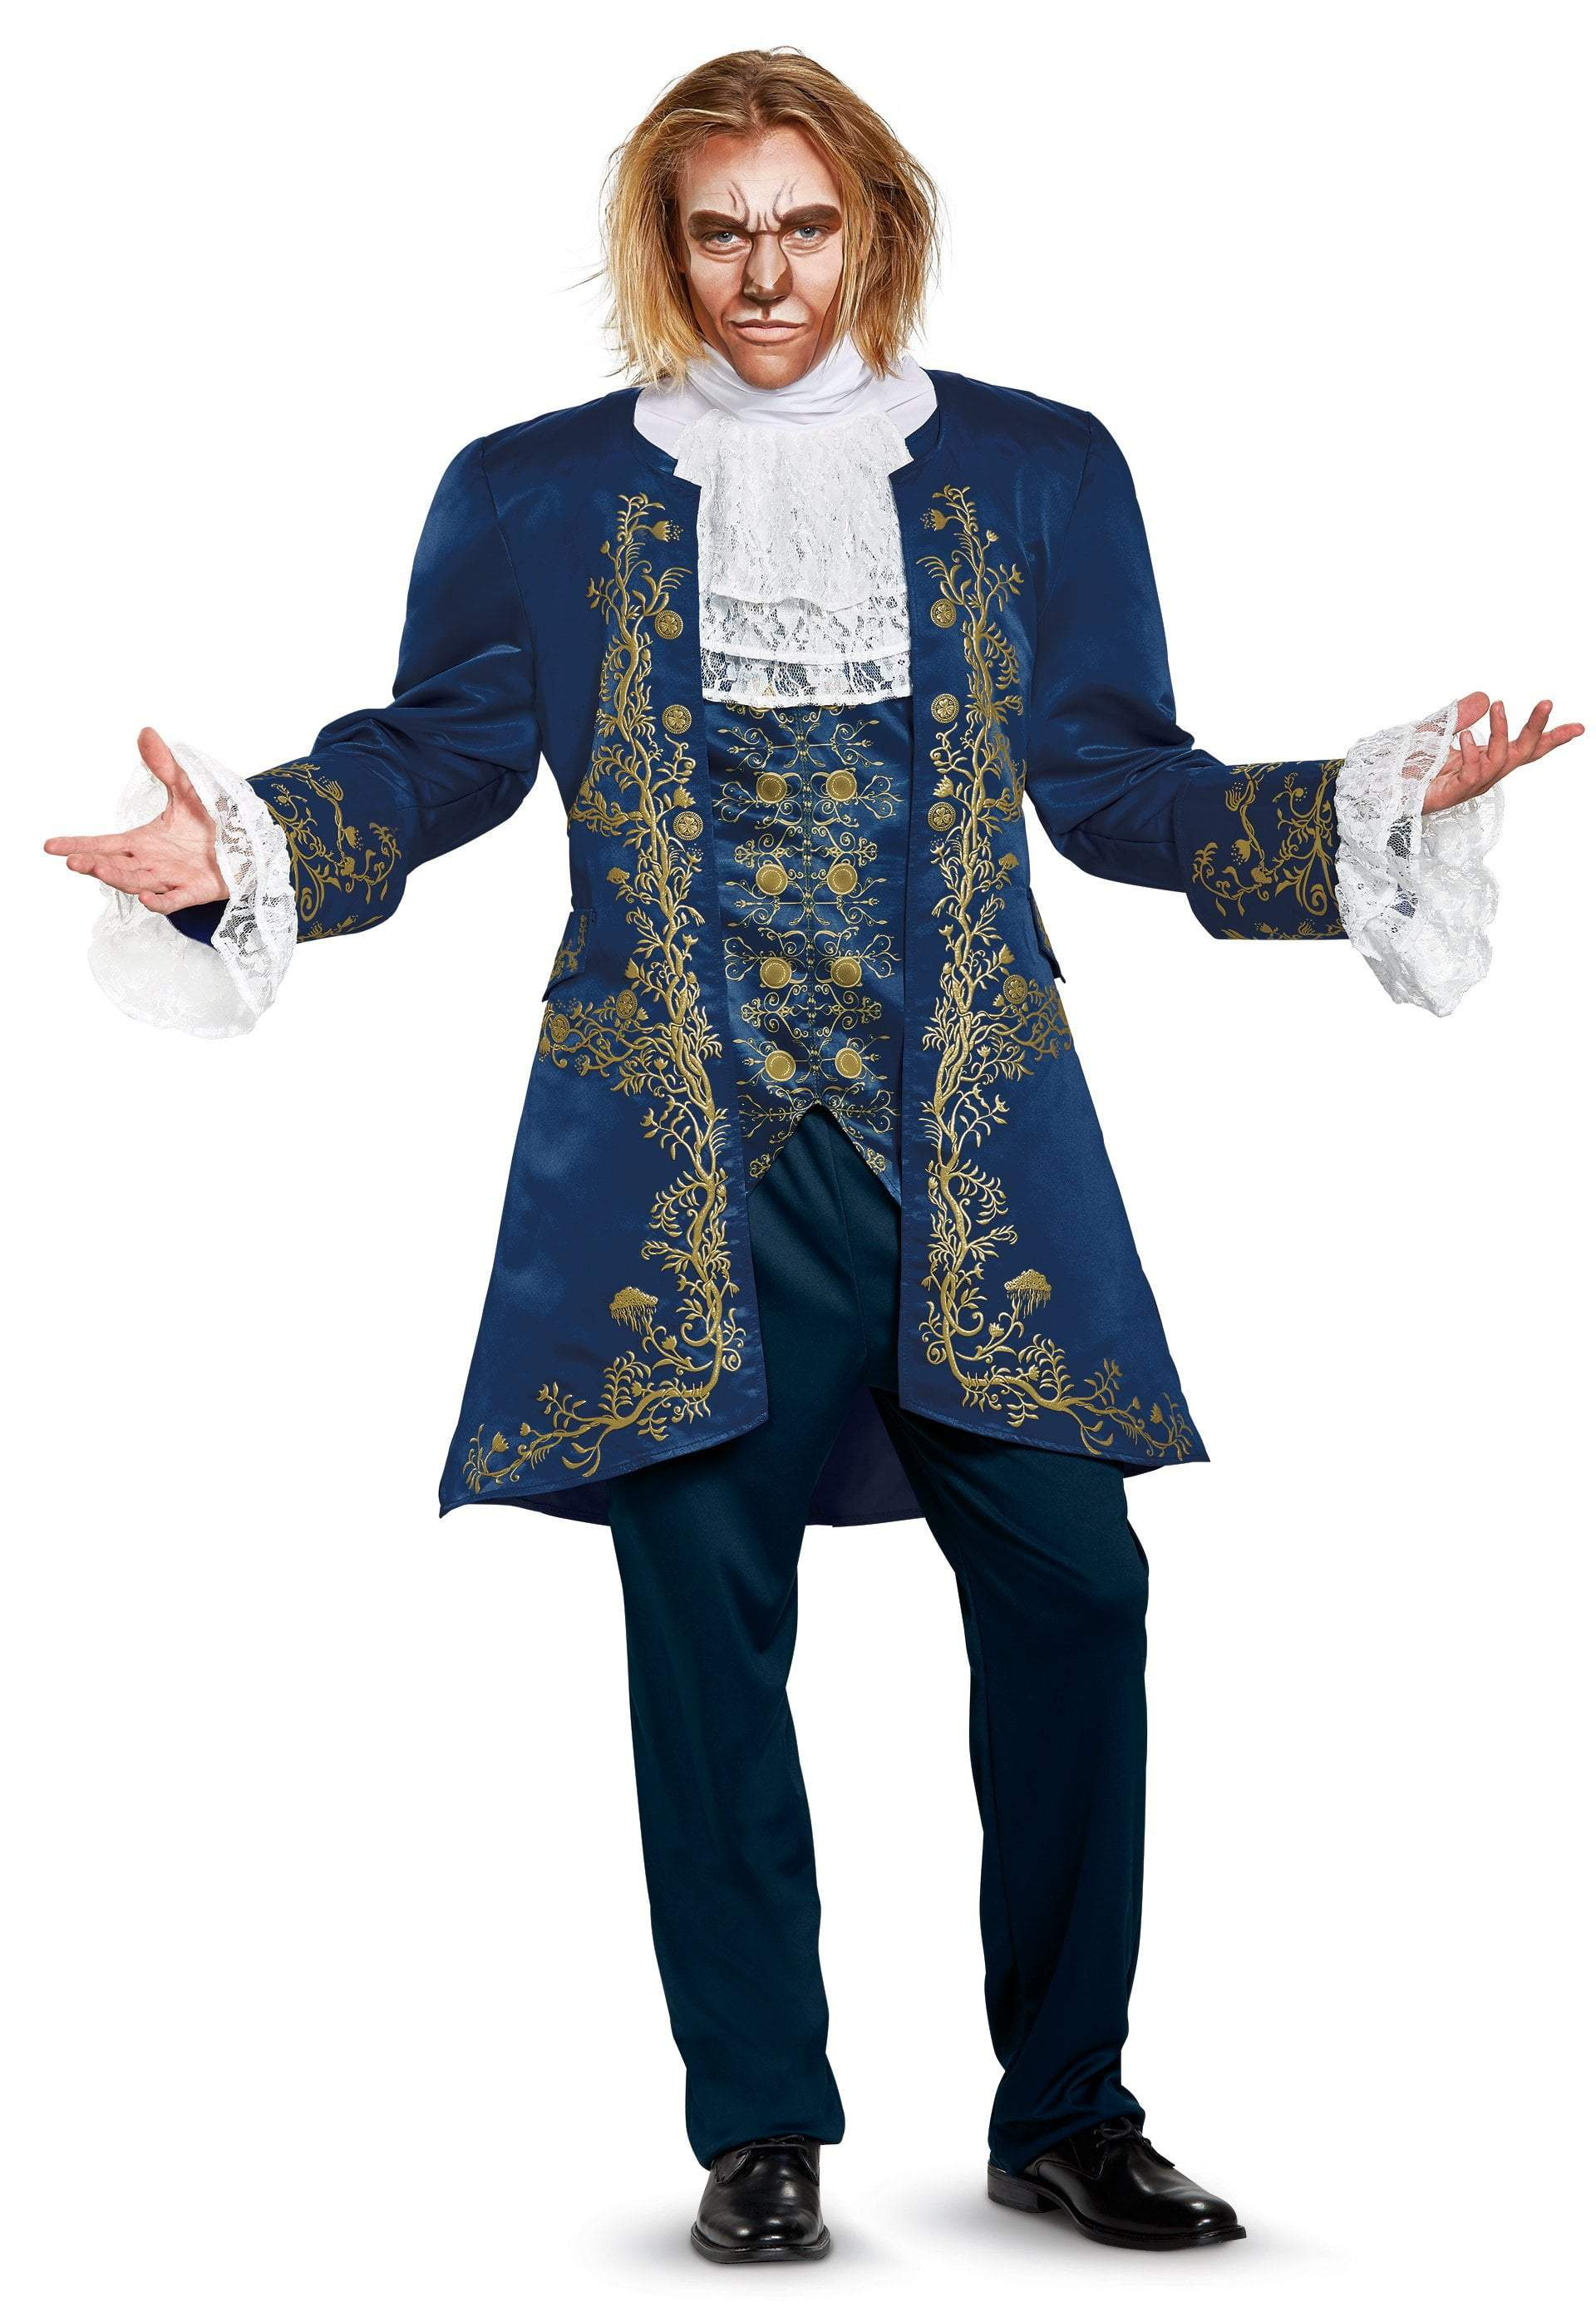 Disguise Costumes XLARGE (42-46) Adult Beast Prestige Costume - Beauty and the Beast